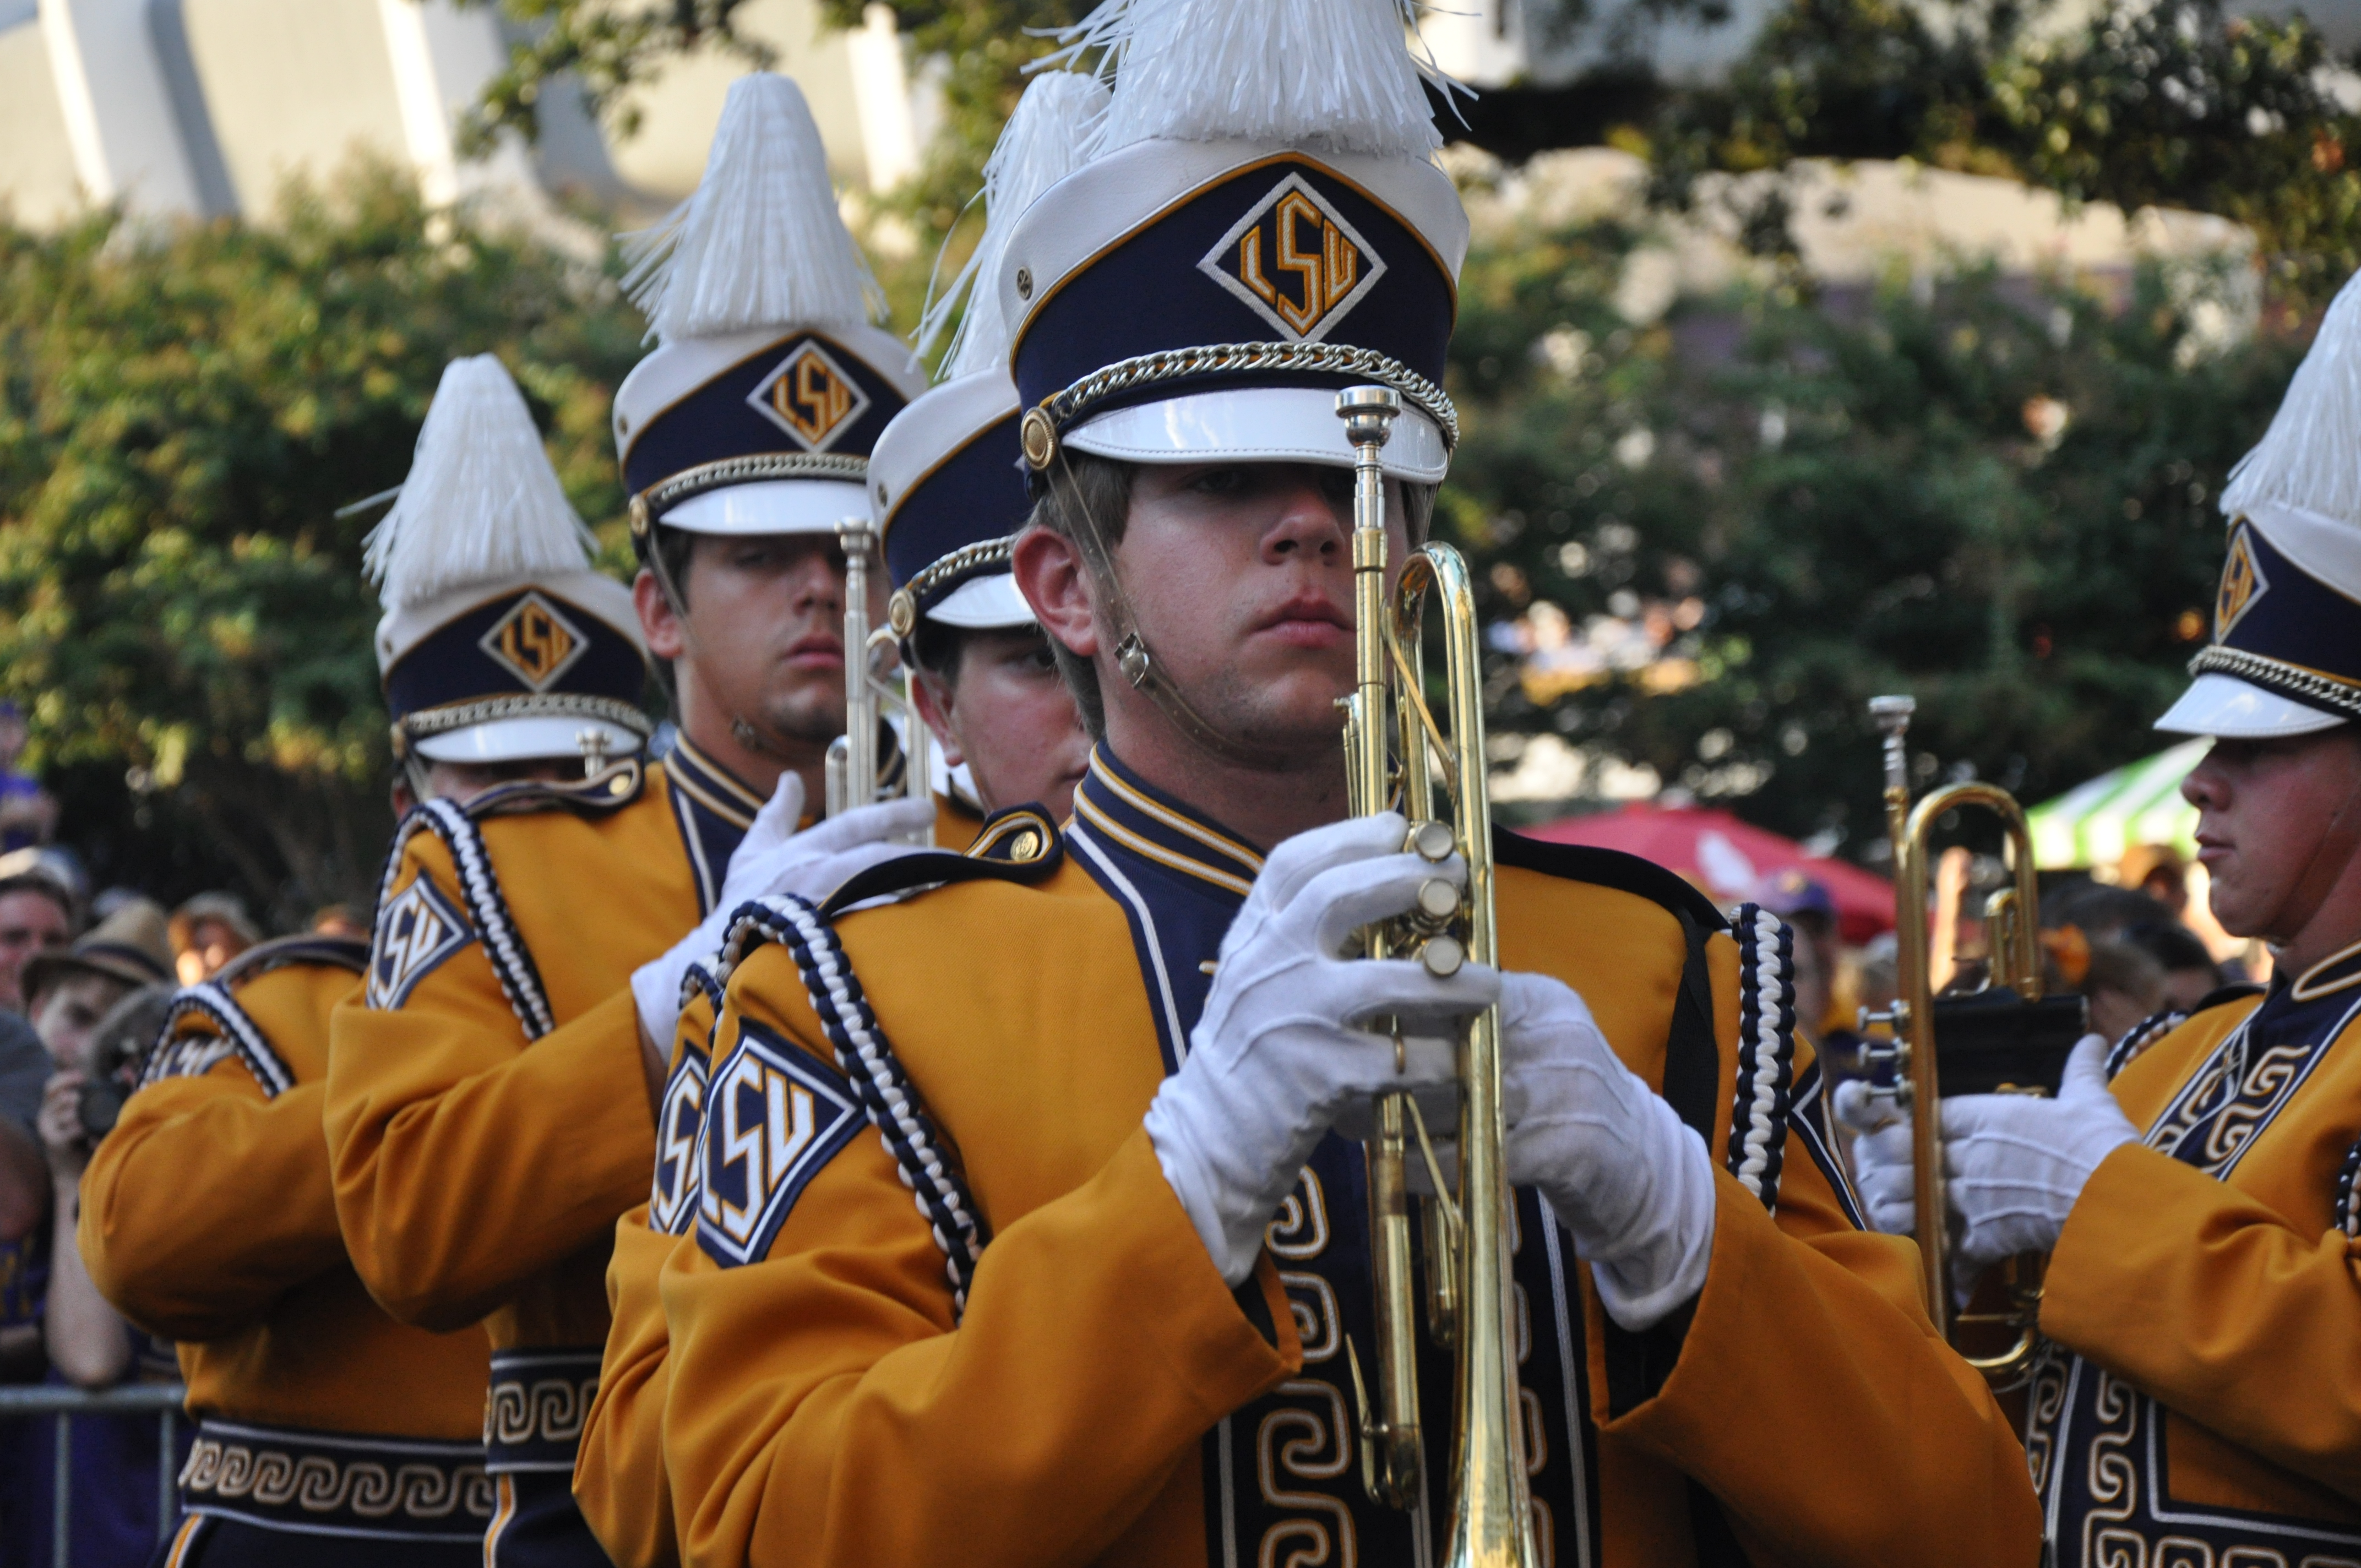 Golden Band From Tigerland